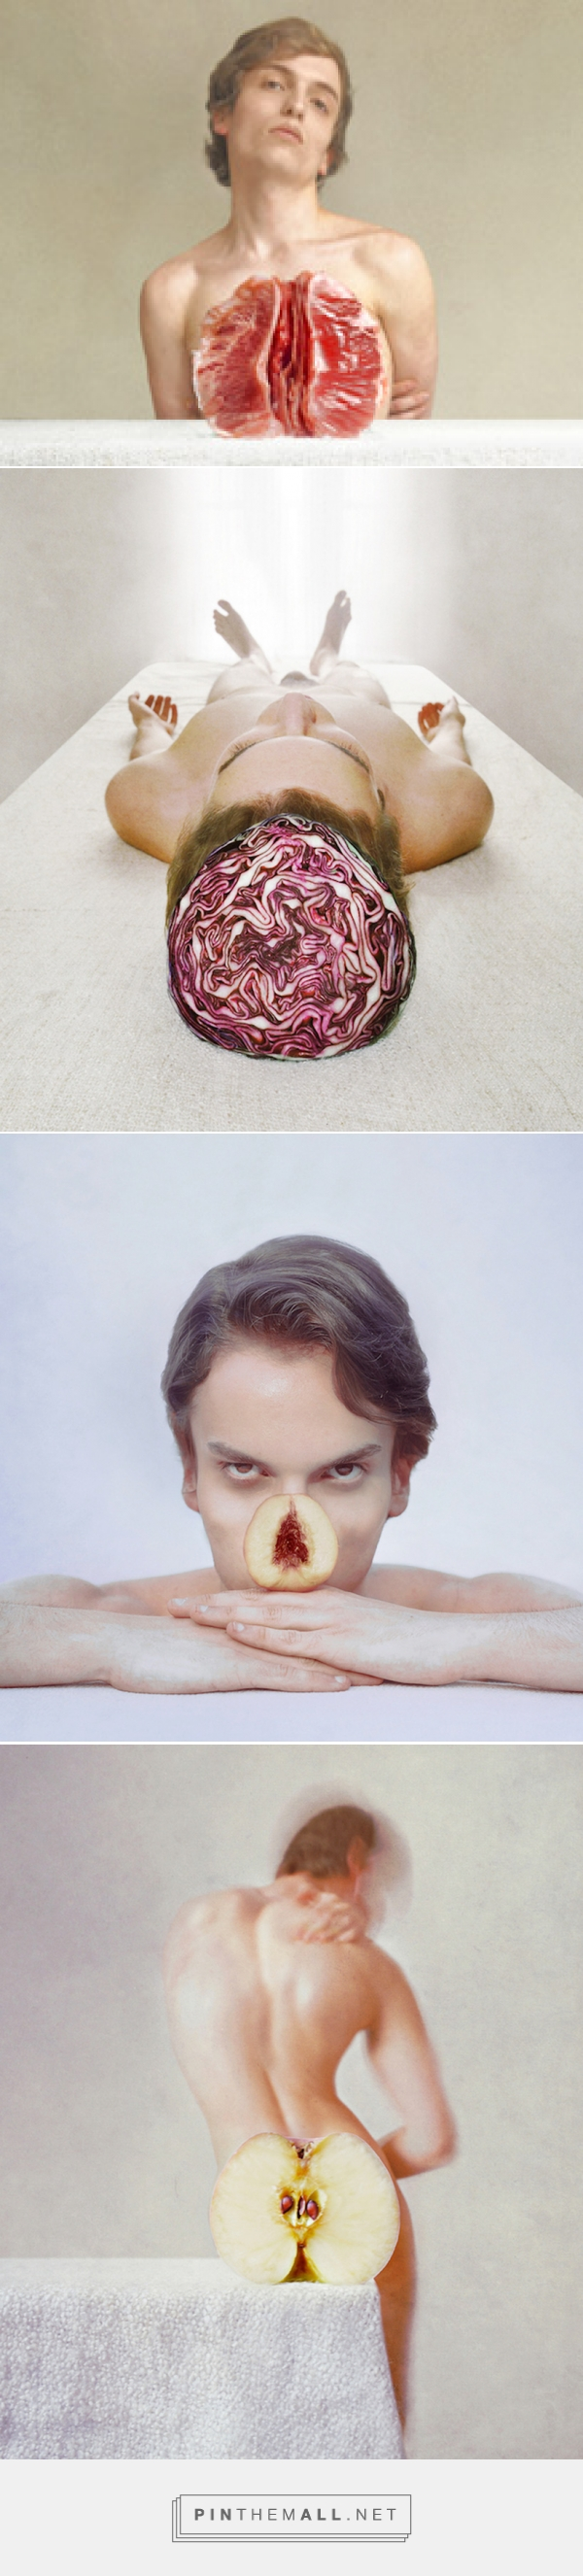 marwane pallas uses forced perspective to parallel human body parts and food - created via http://pinthemall.net